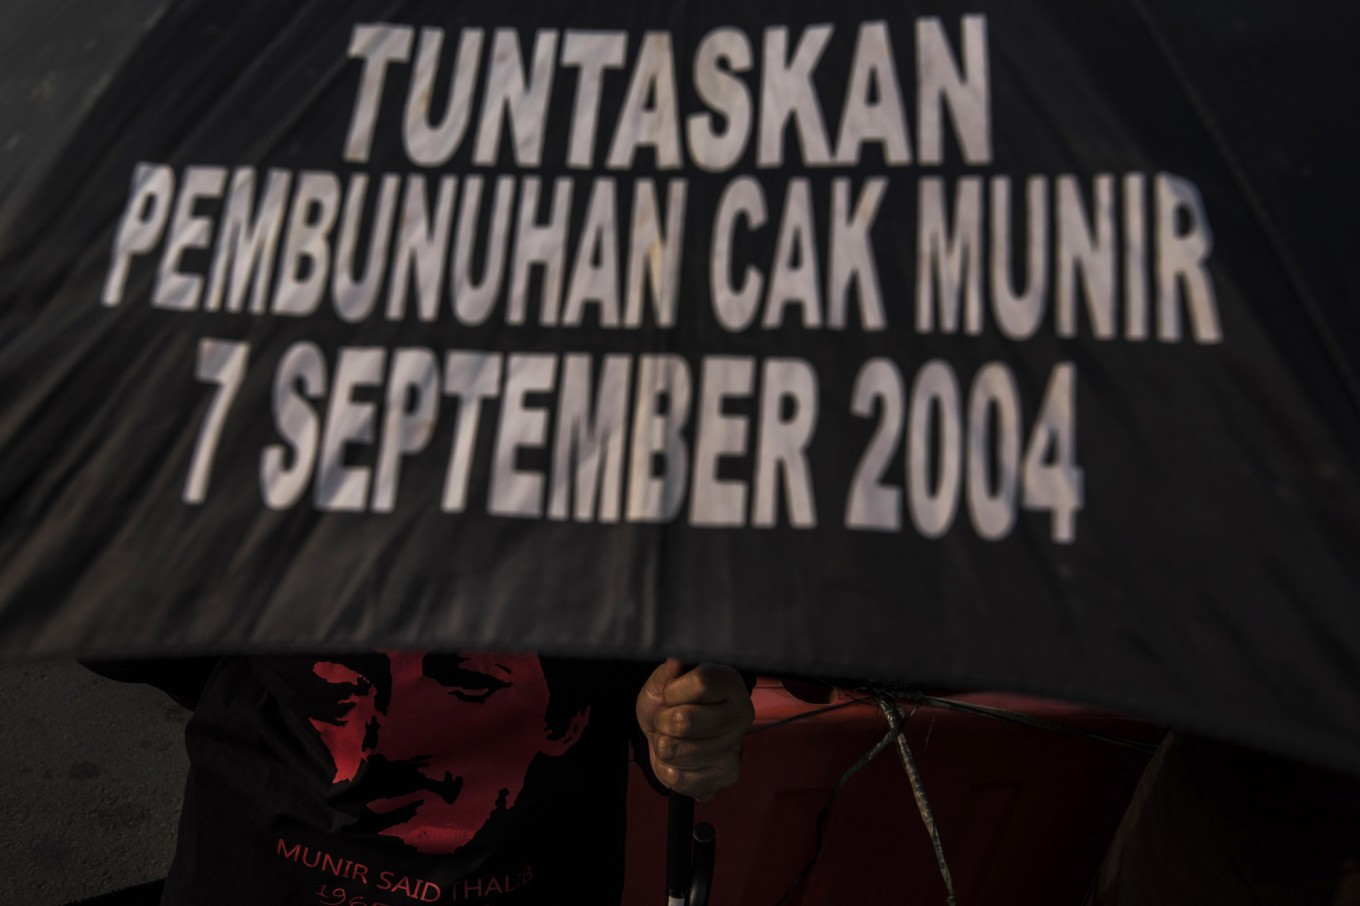 Govt must find 'lost' documents on Munir's death: Investigator